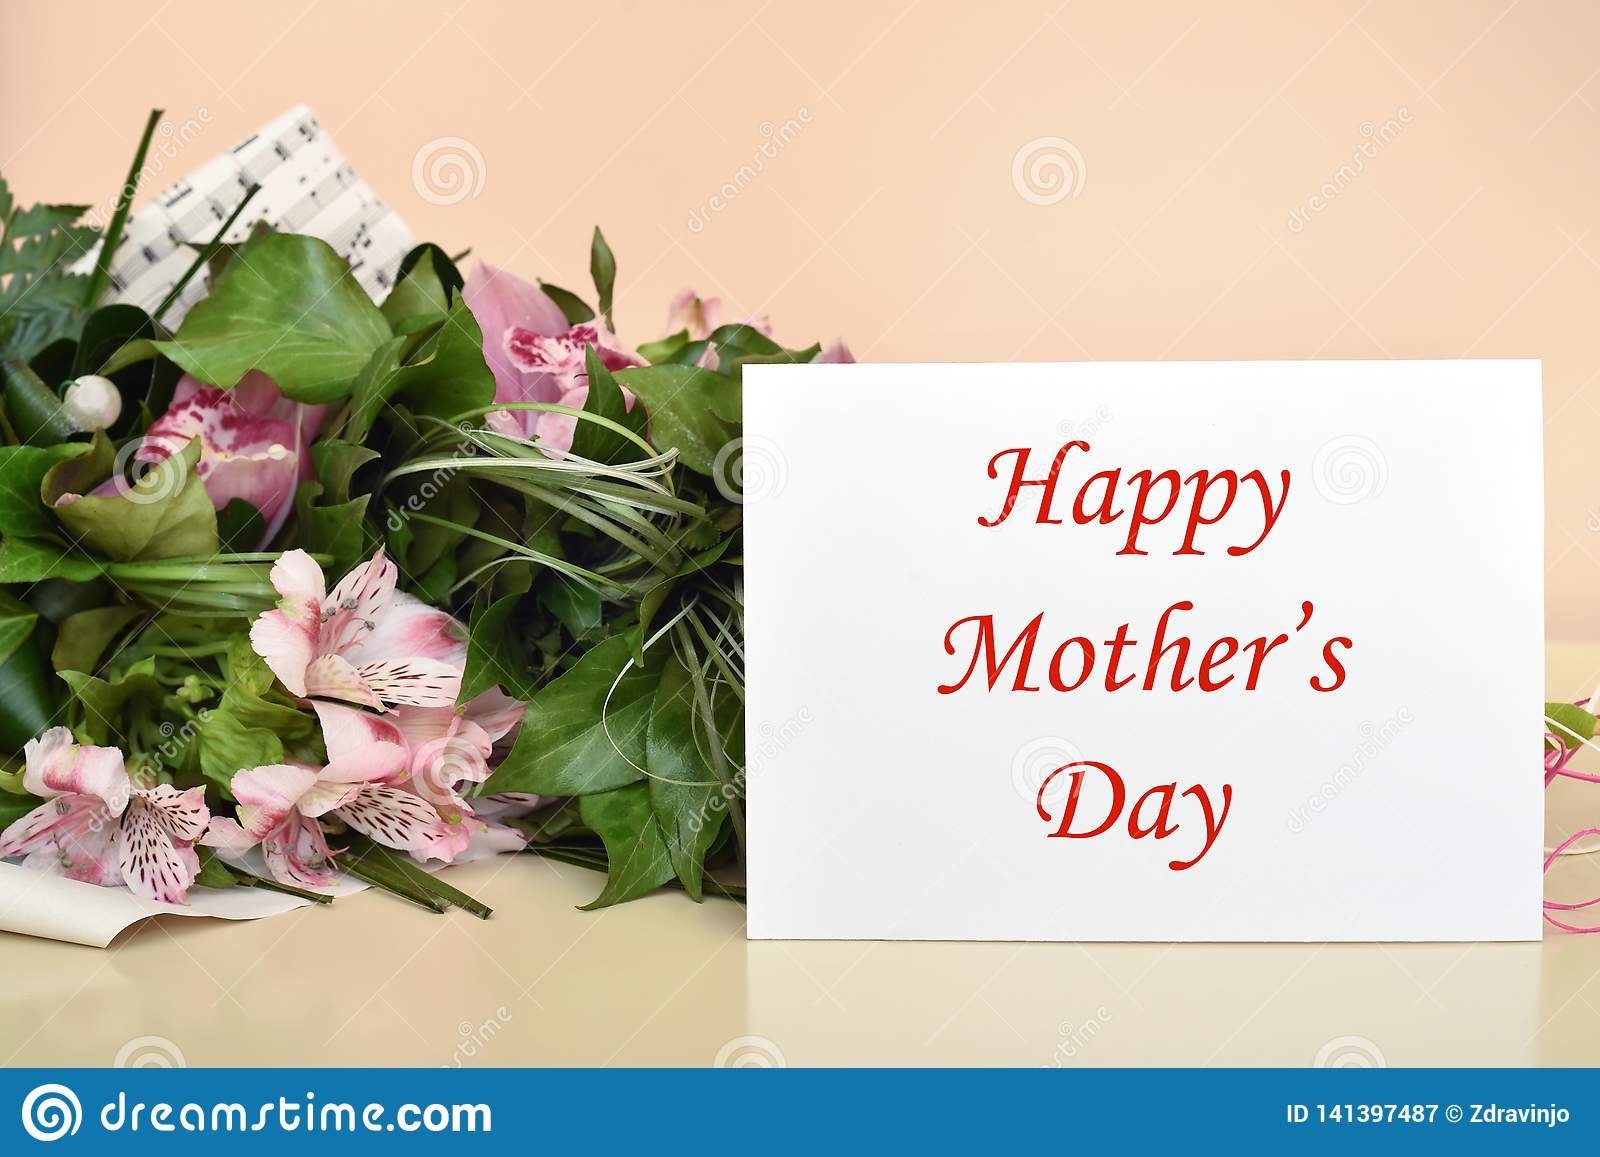 Flowers and greeting card with Happy Mother's Day message